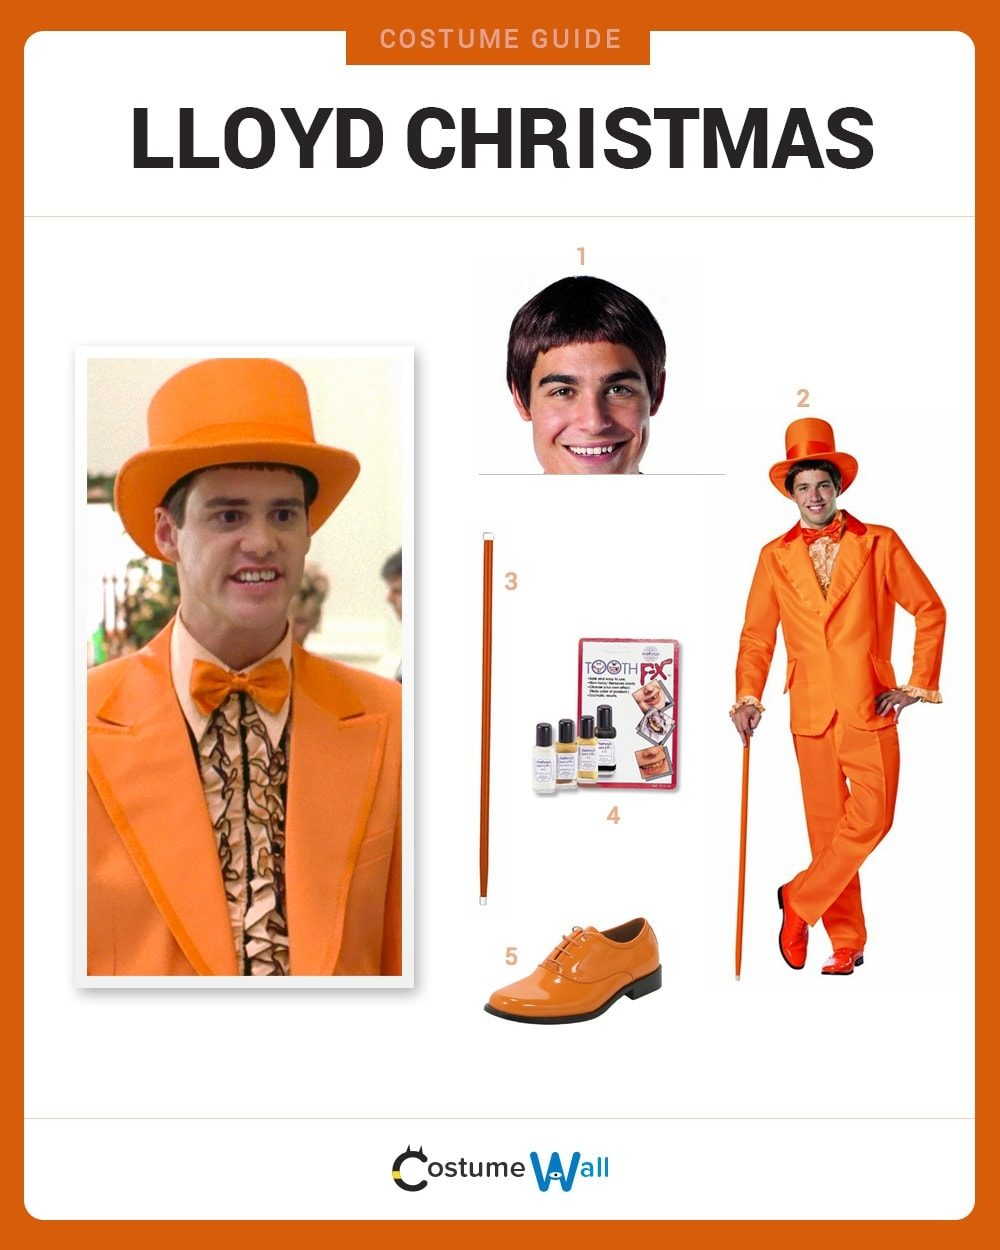 Lloyd Christmas Costume Guide